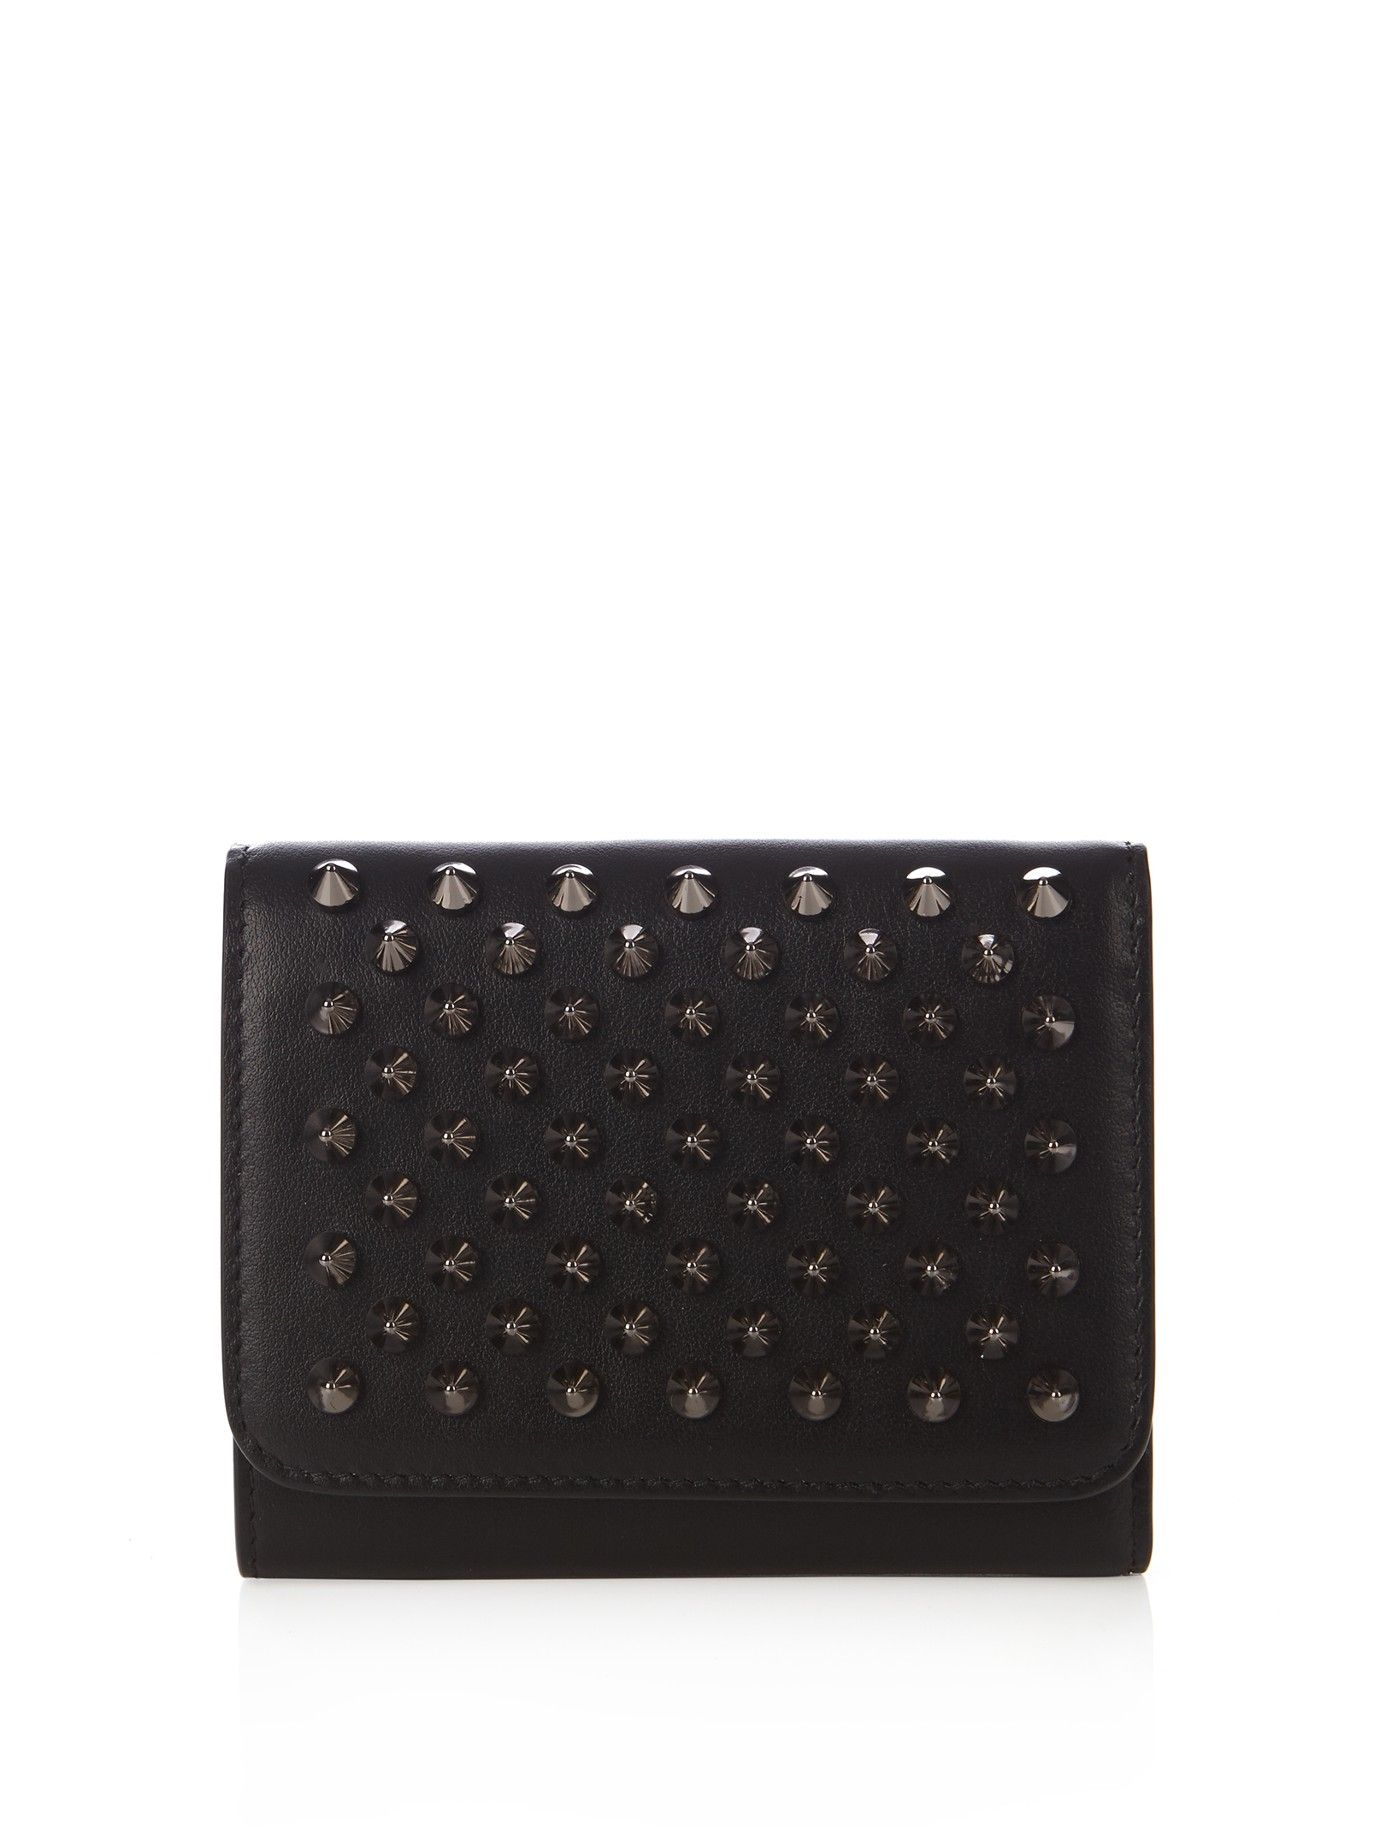 5436425a7357 Macron mini spike-embellished leather wallet | Christian Louboutin ...